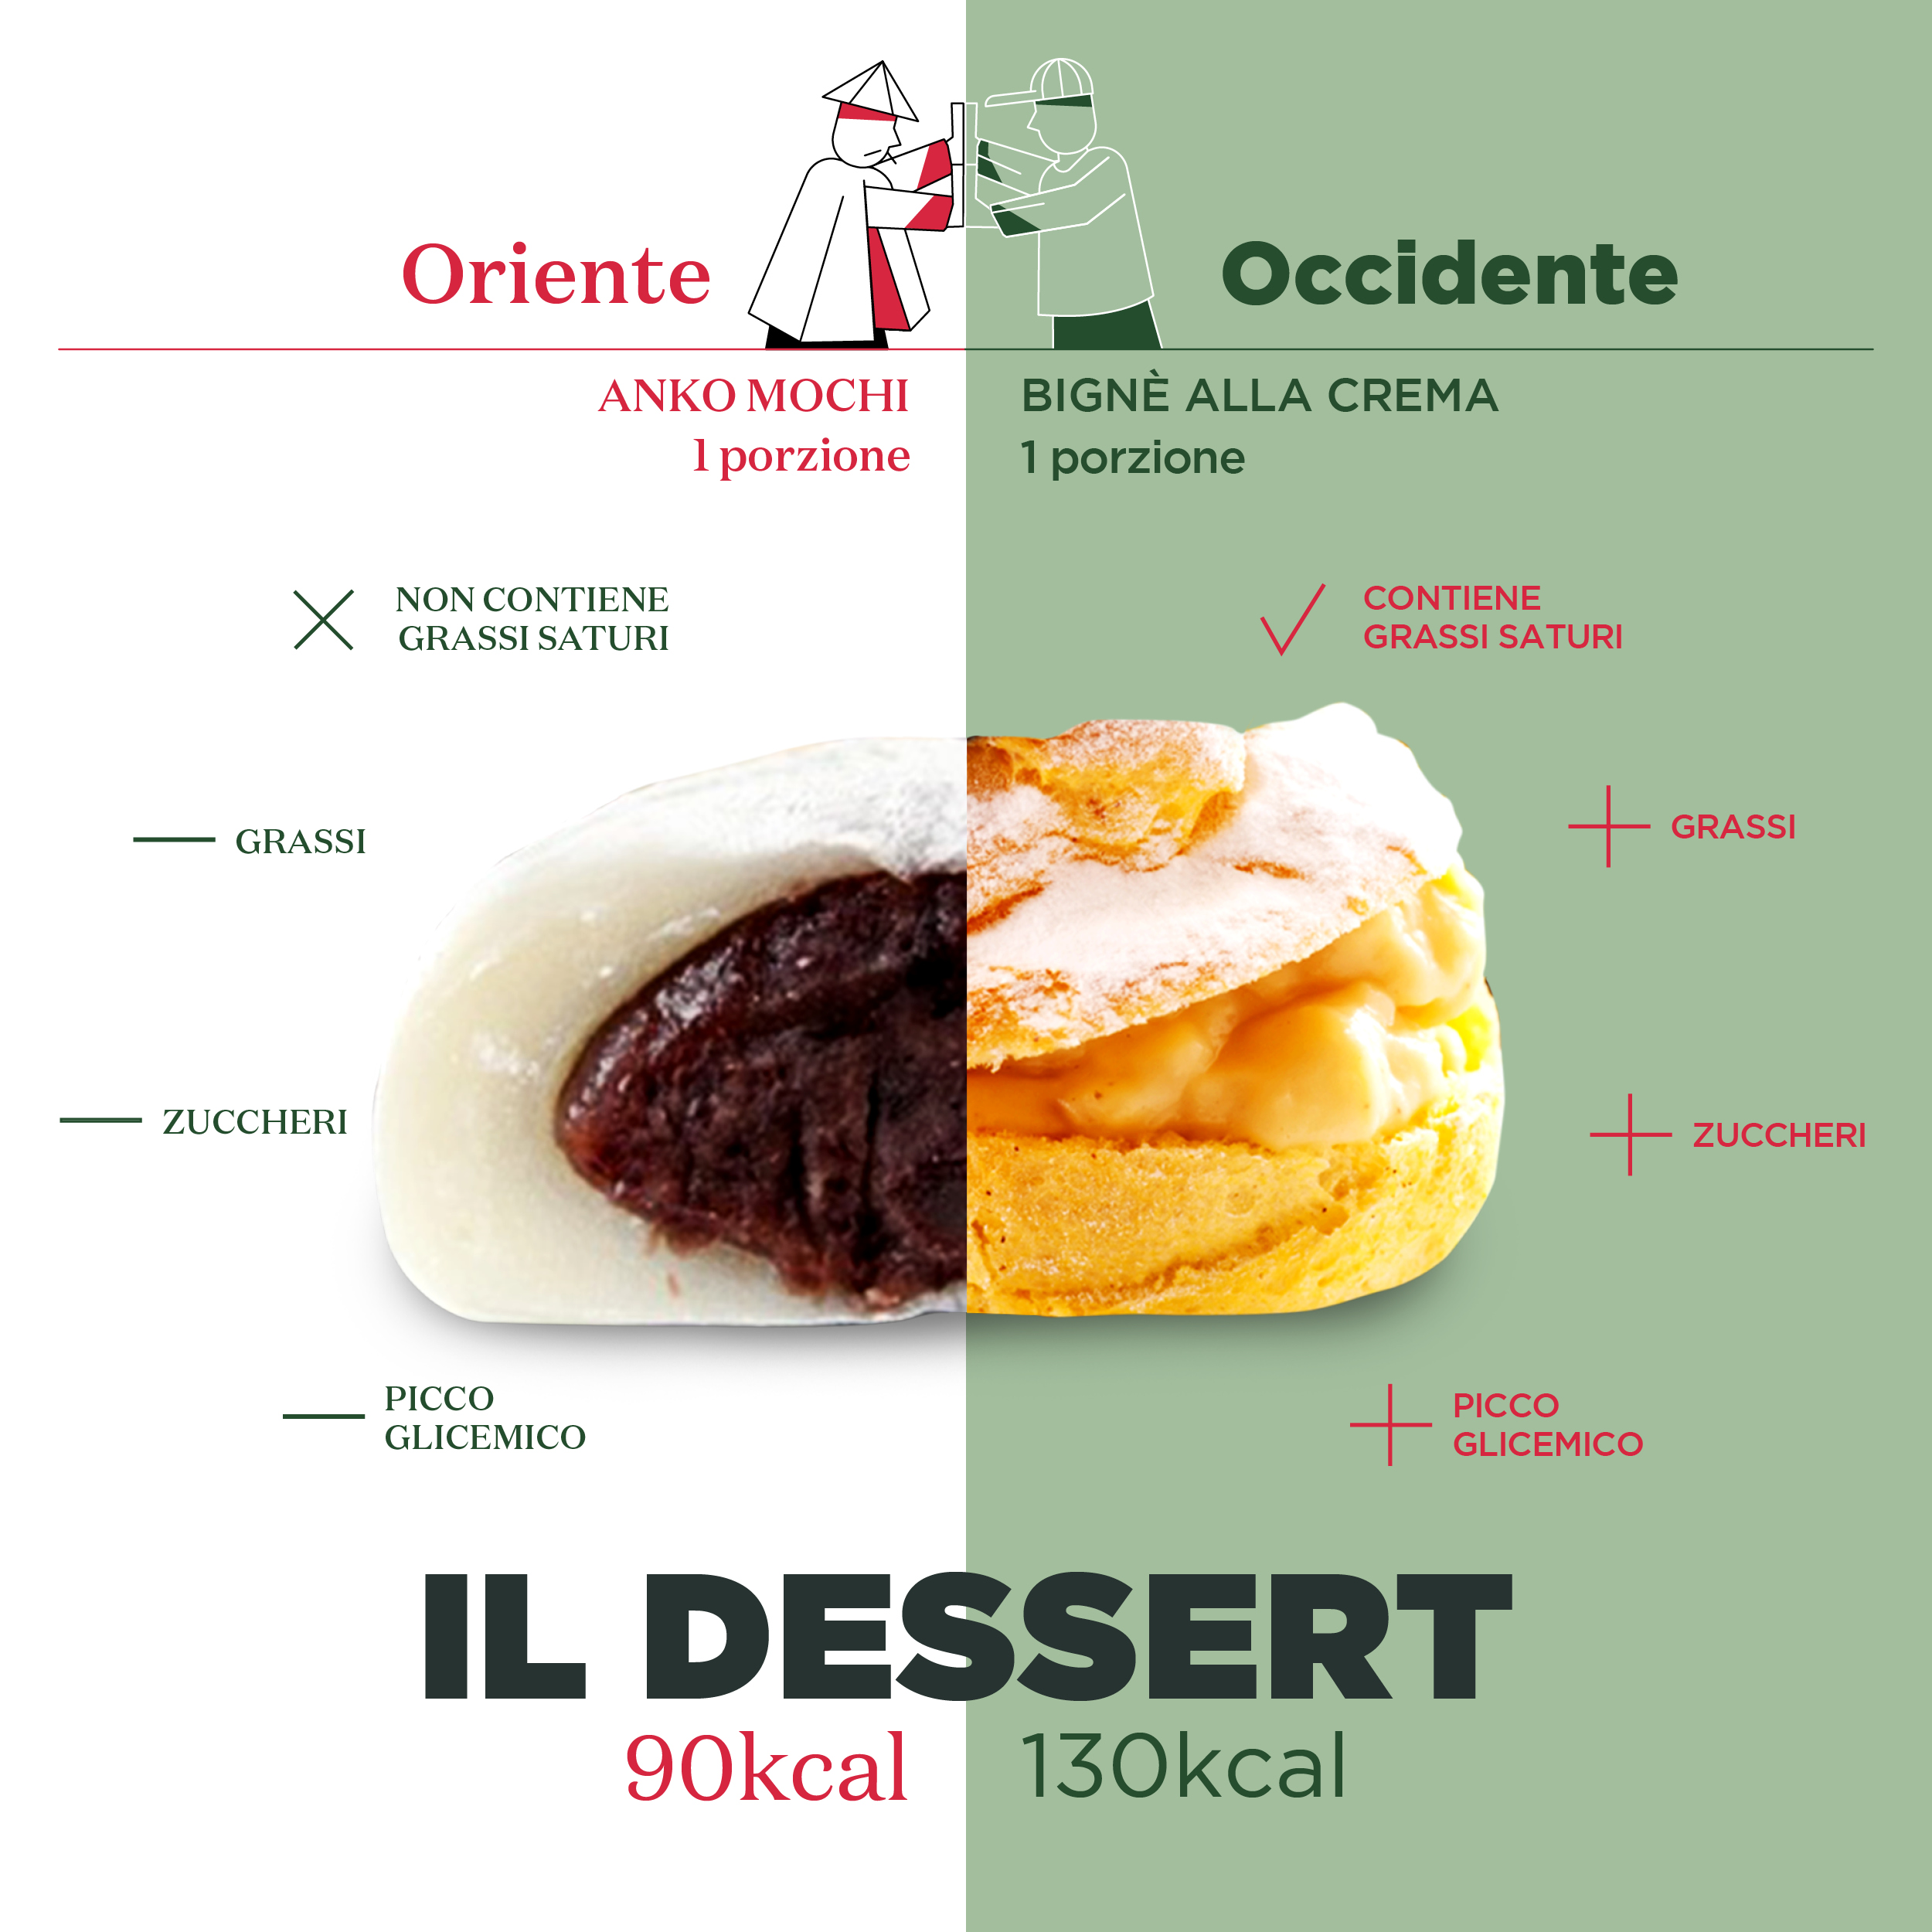 Oriente VS Occidente Dessert